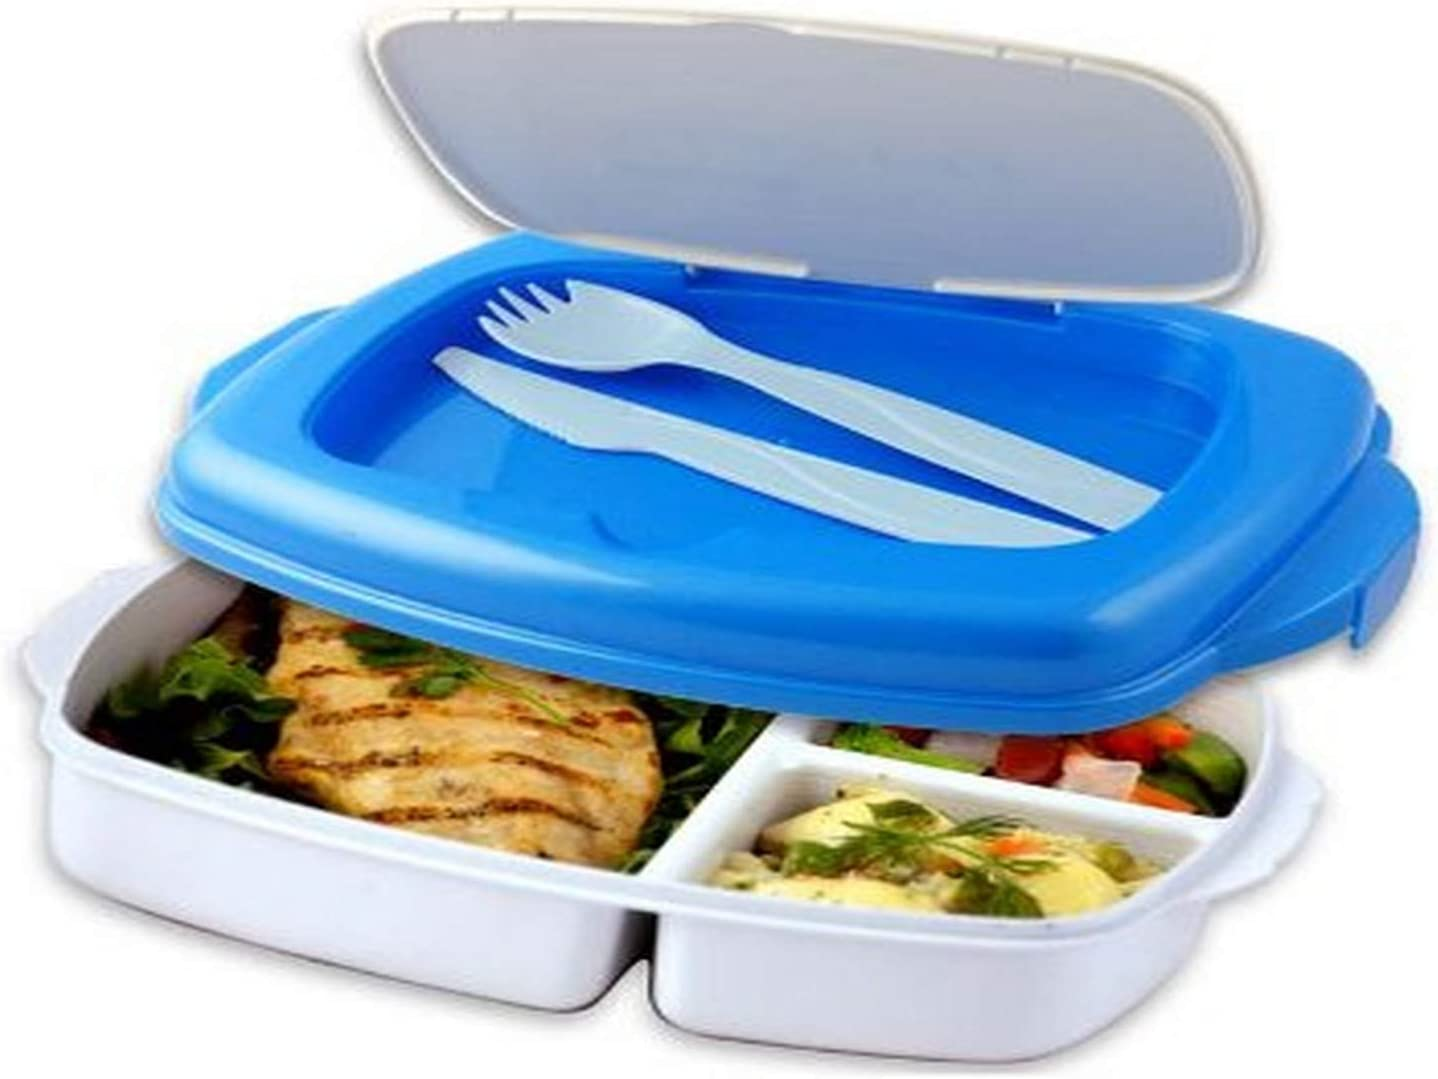 Stay-Fit Lunch 2 Go Container, EZ Freeze by Cool Gear Stay-Fit: Amazon.es: Hogar